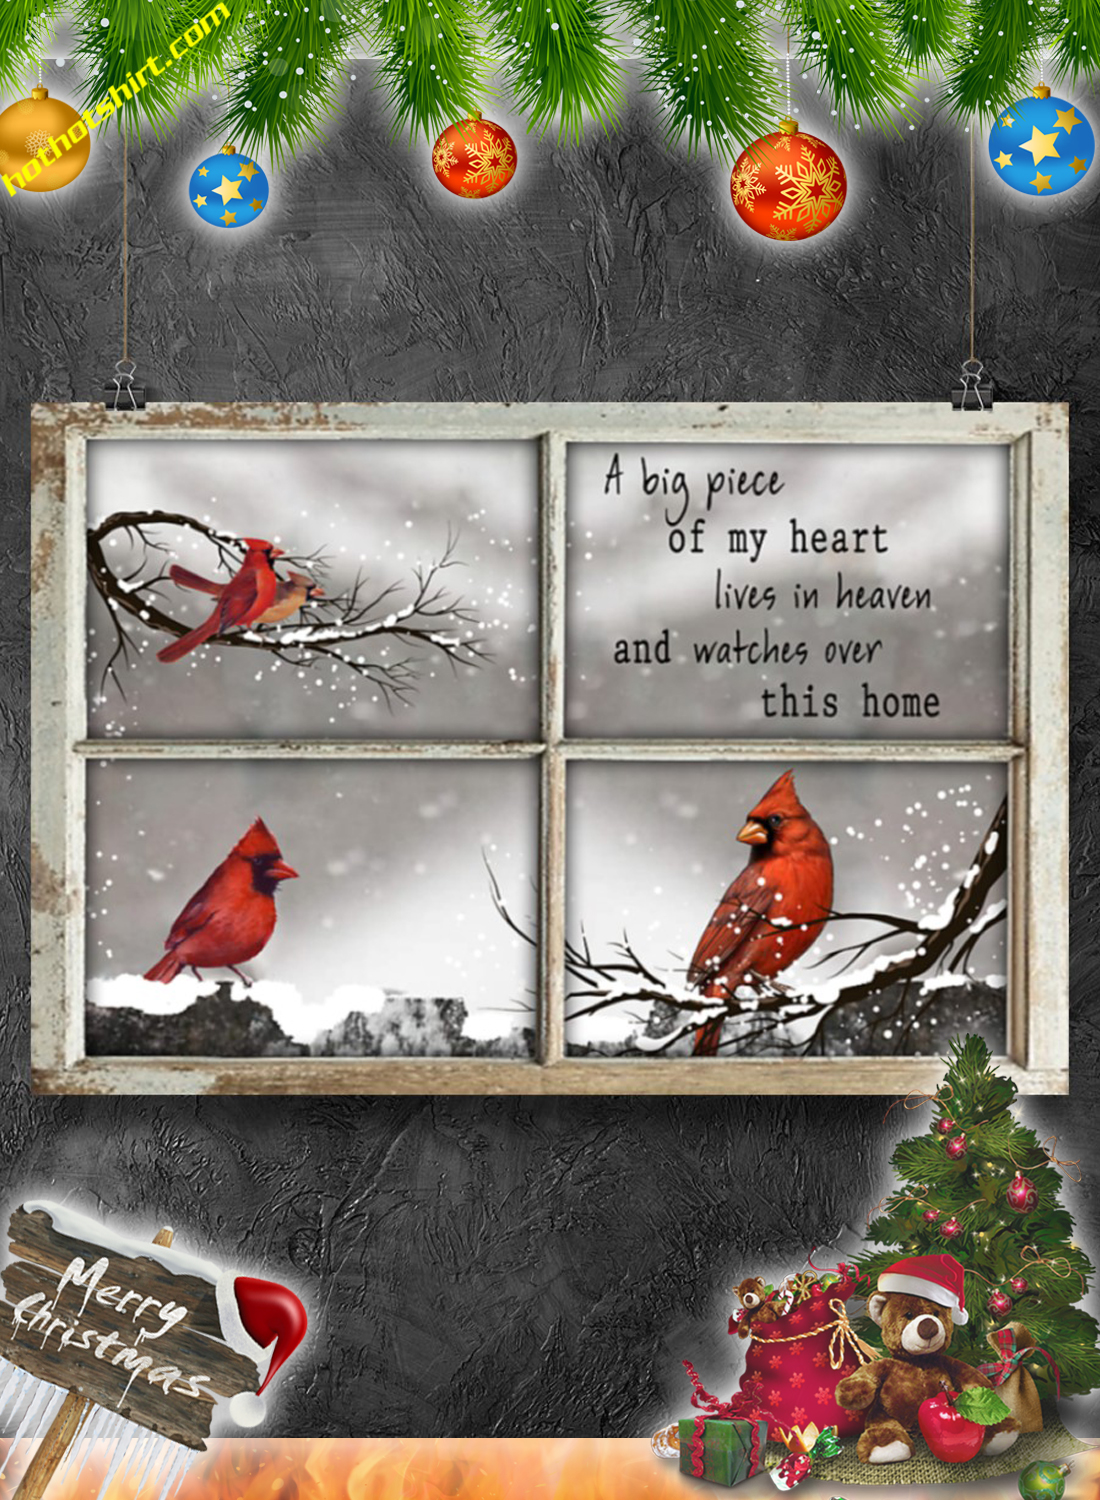 Cardinal Bird A big piece of my heart lives in heaven poster 3